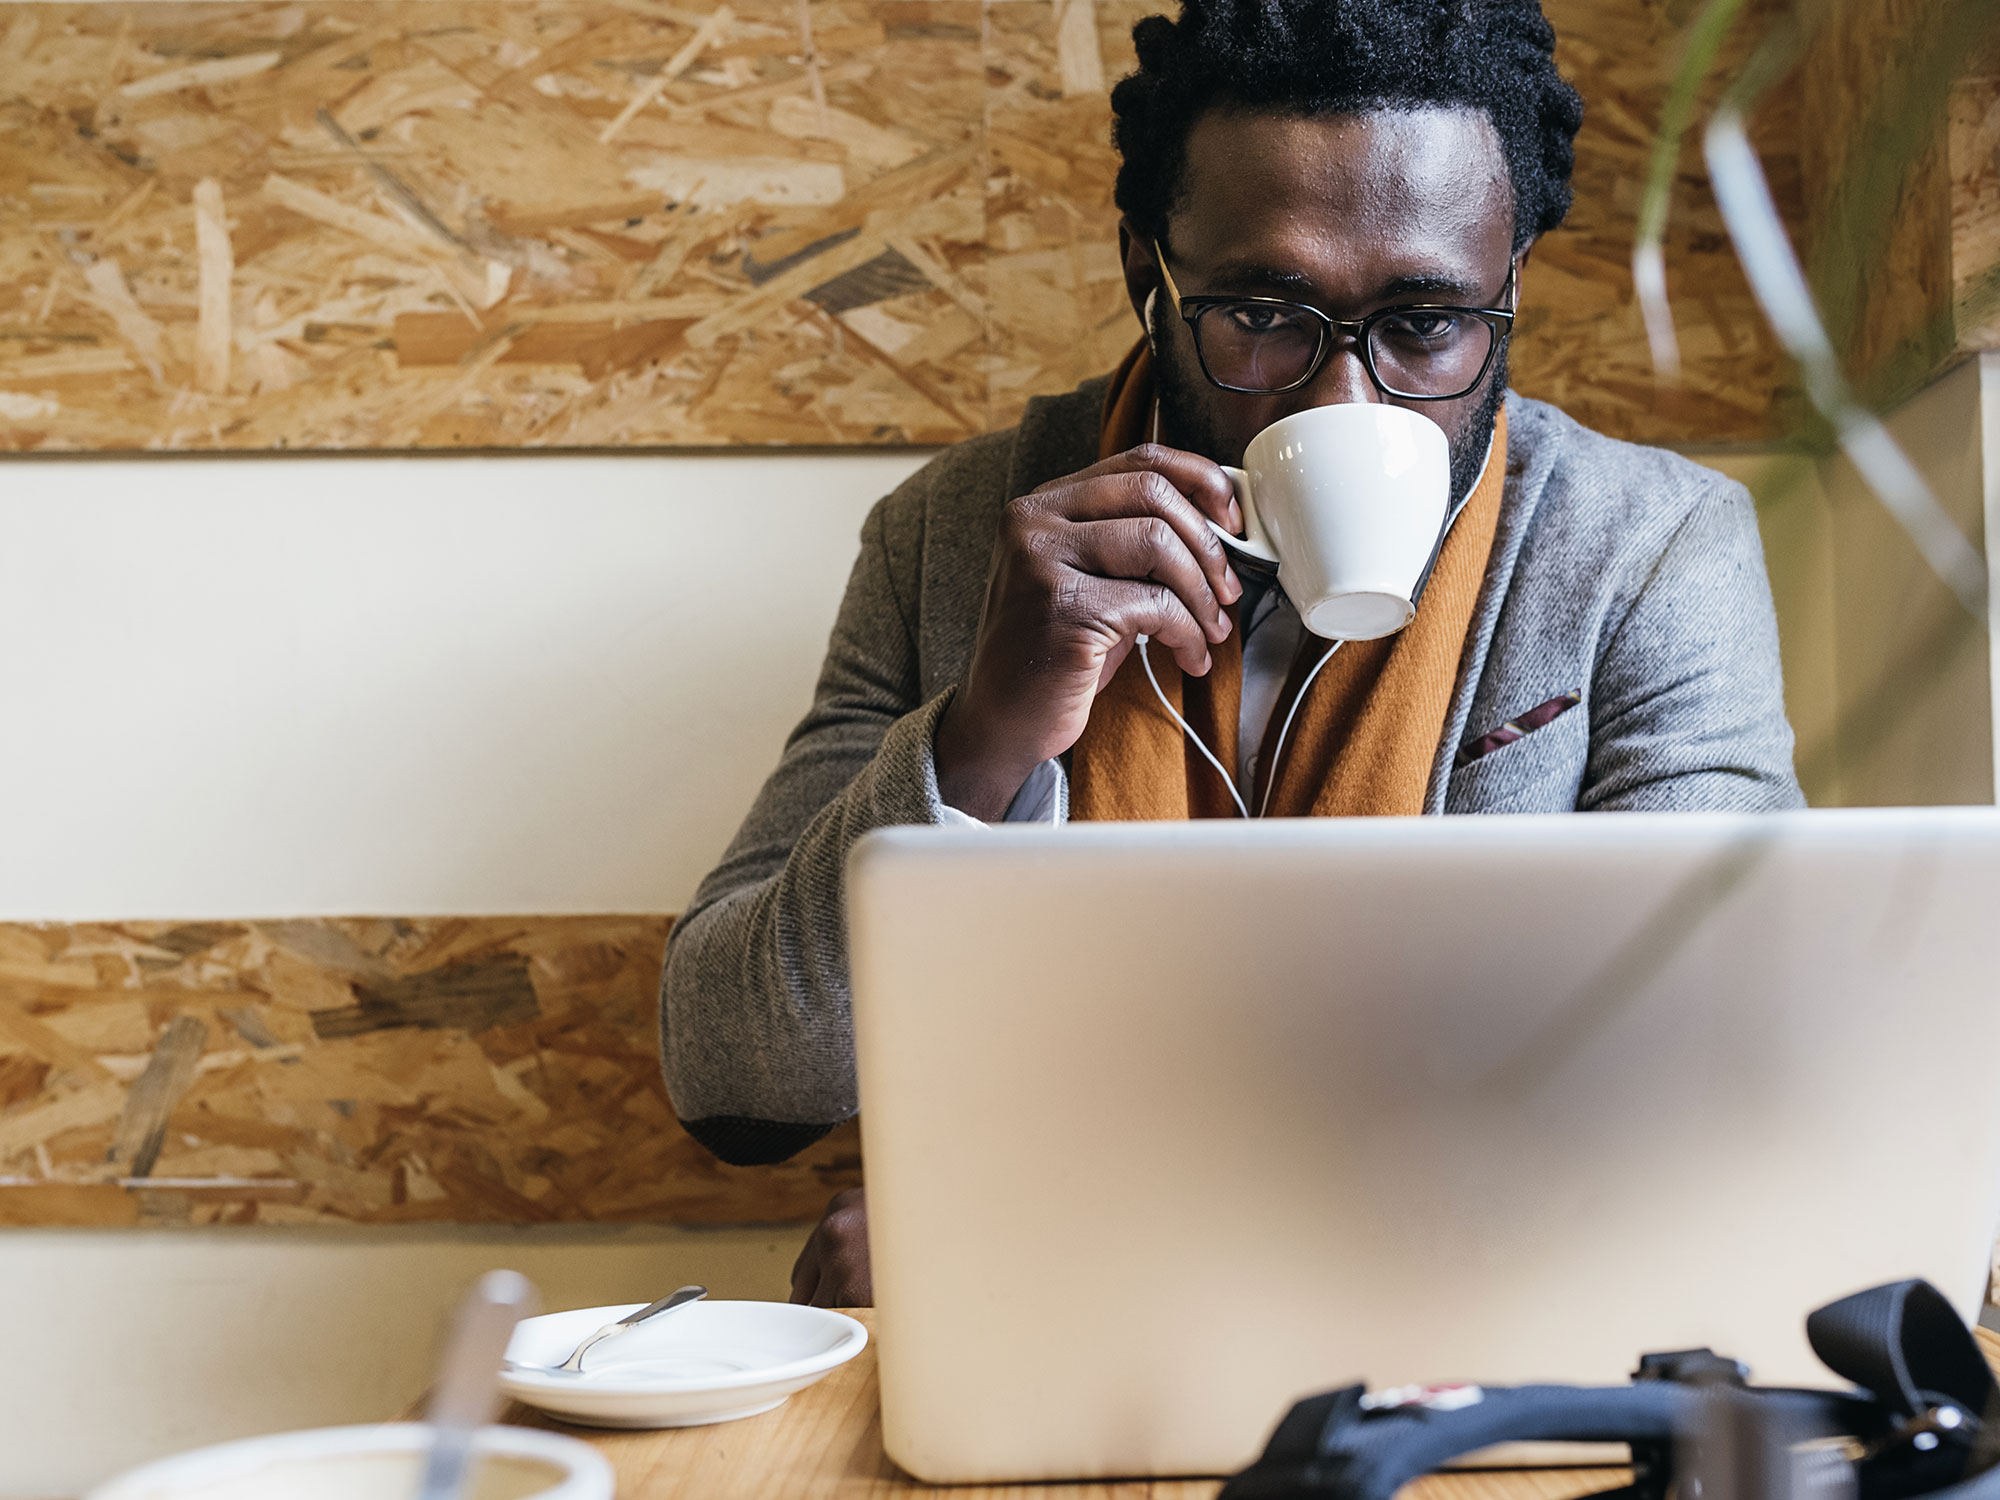 Man sipping espresso while on his laptop